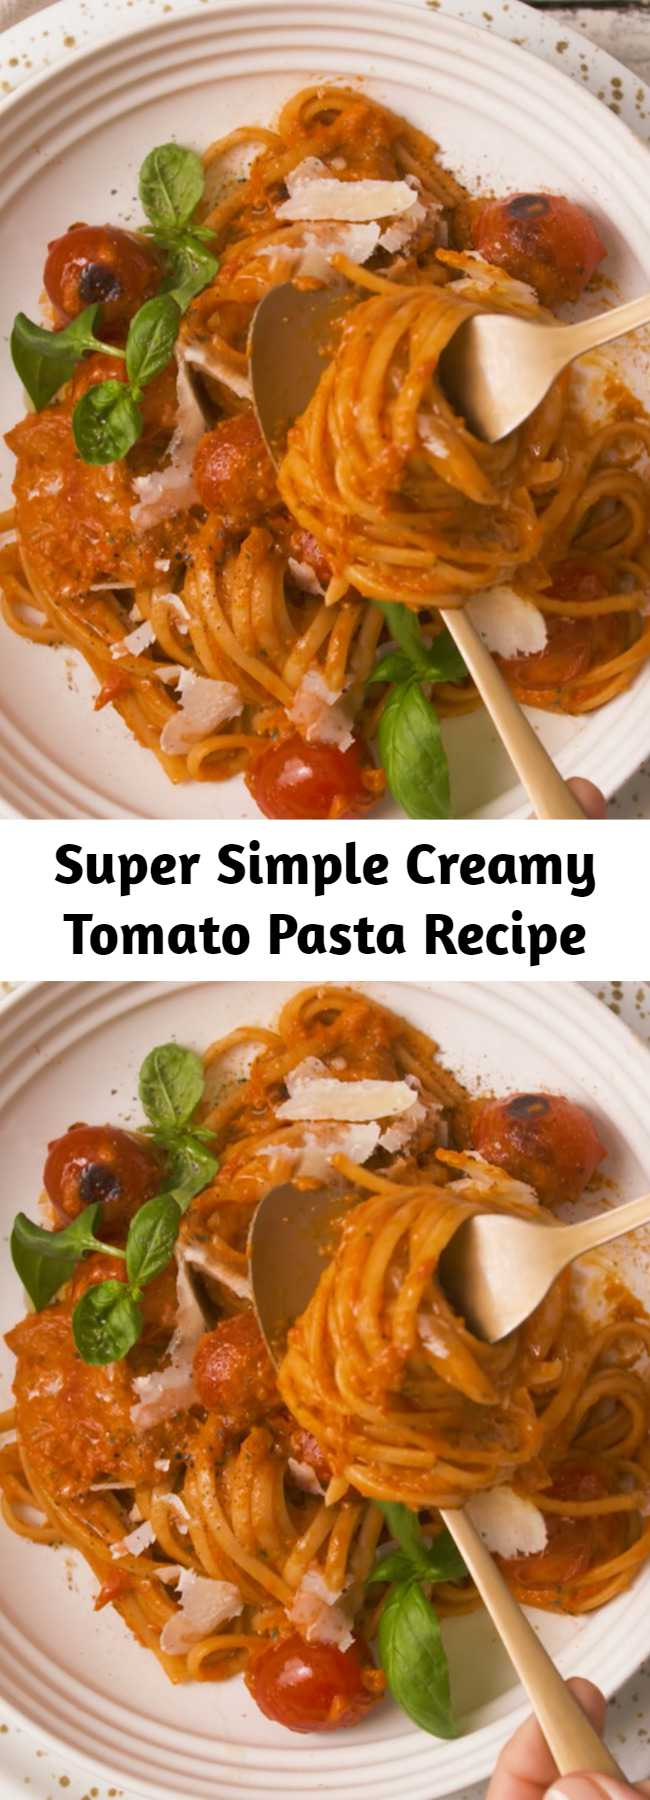 Super Simple Creamy Tomato Pasta Recipe - Roasted tomatoes, red peppers + onions and garlic blended together with some fresh basil leaves and creamy = the most simple yet delicious pasta sauce!